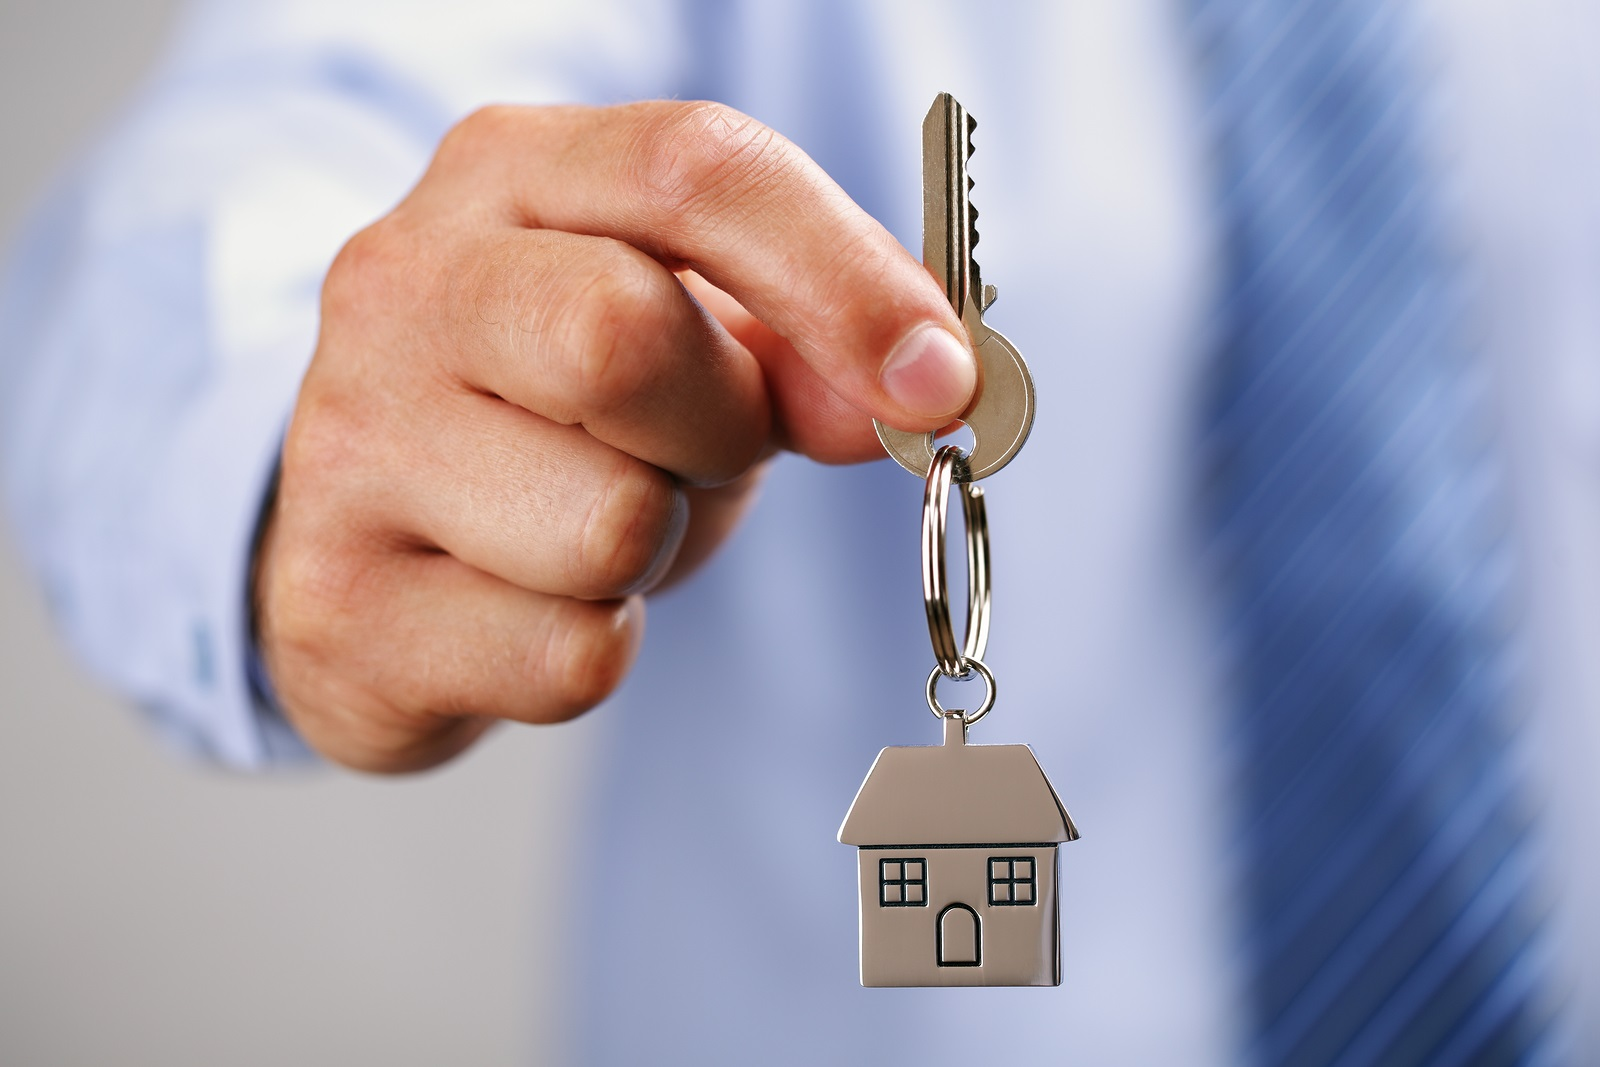 What Is California Refinance And What Factors to Consider?